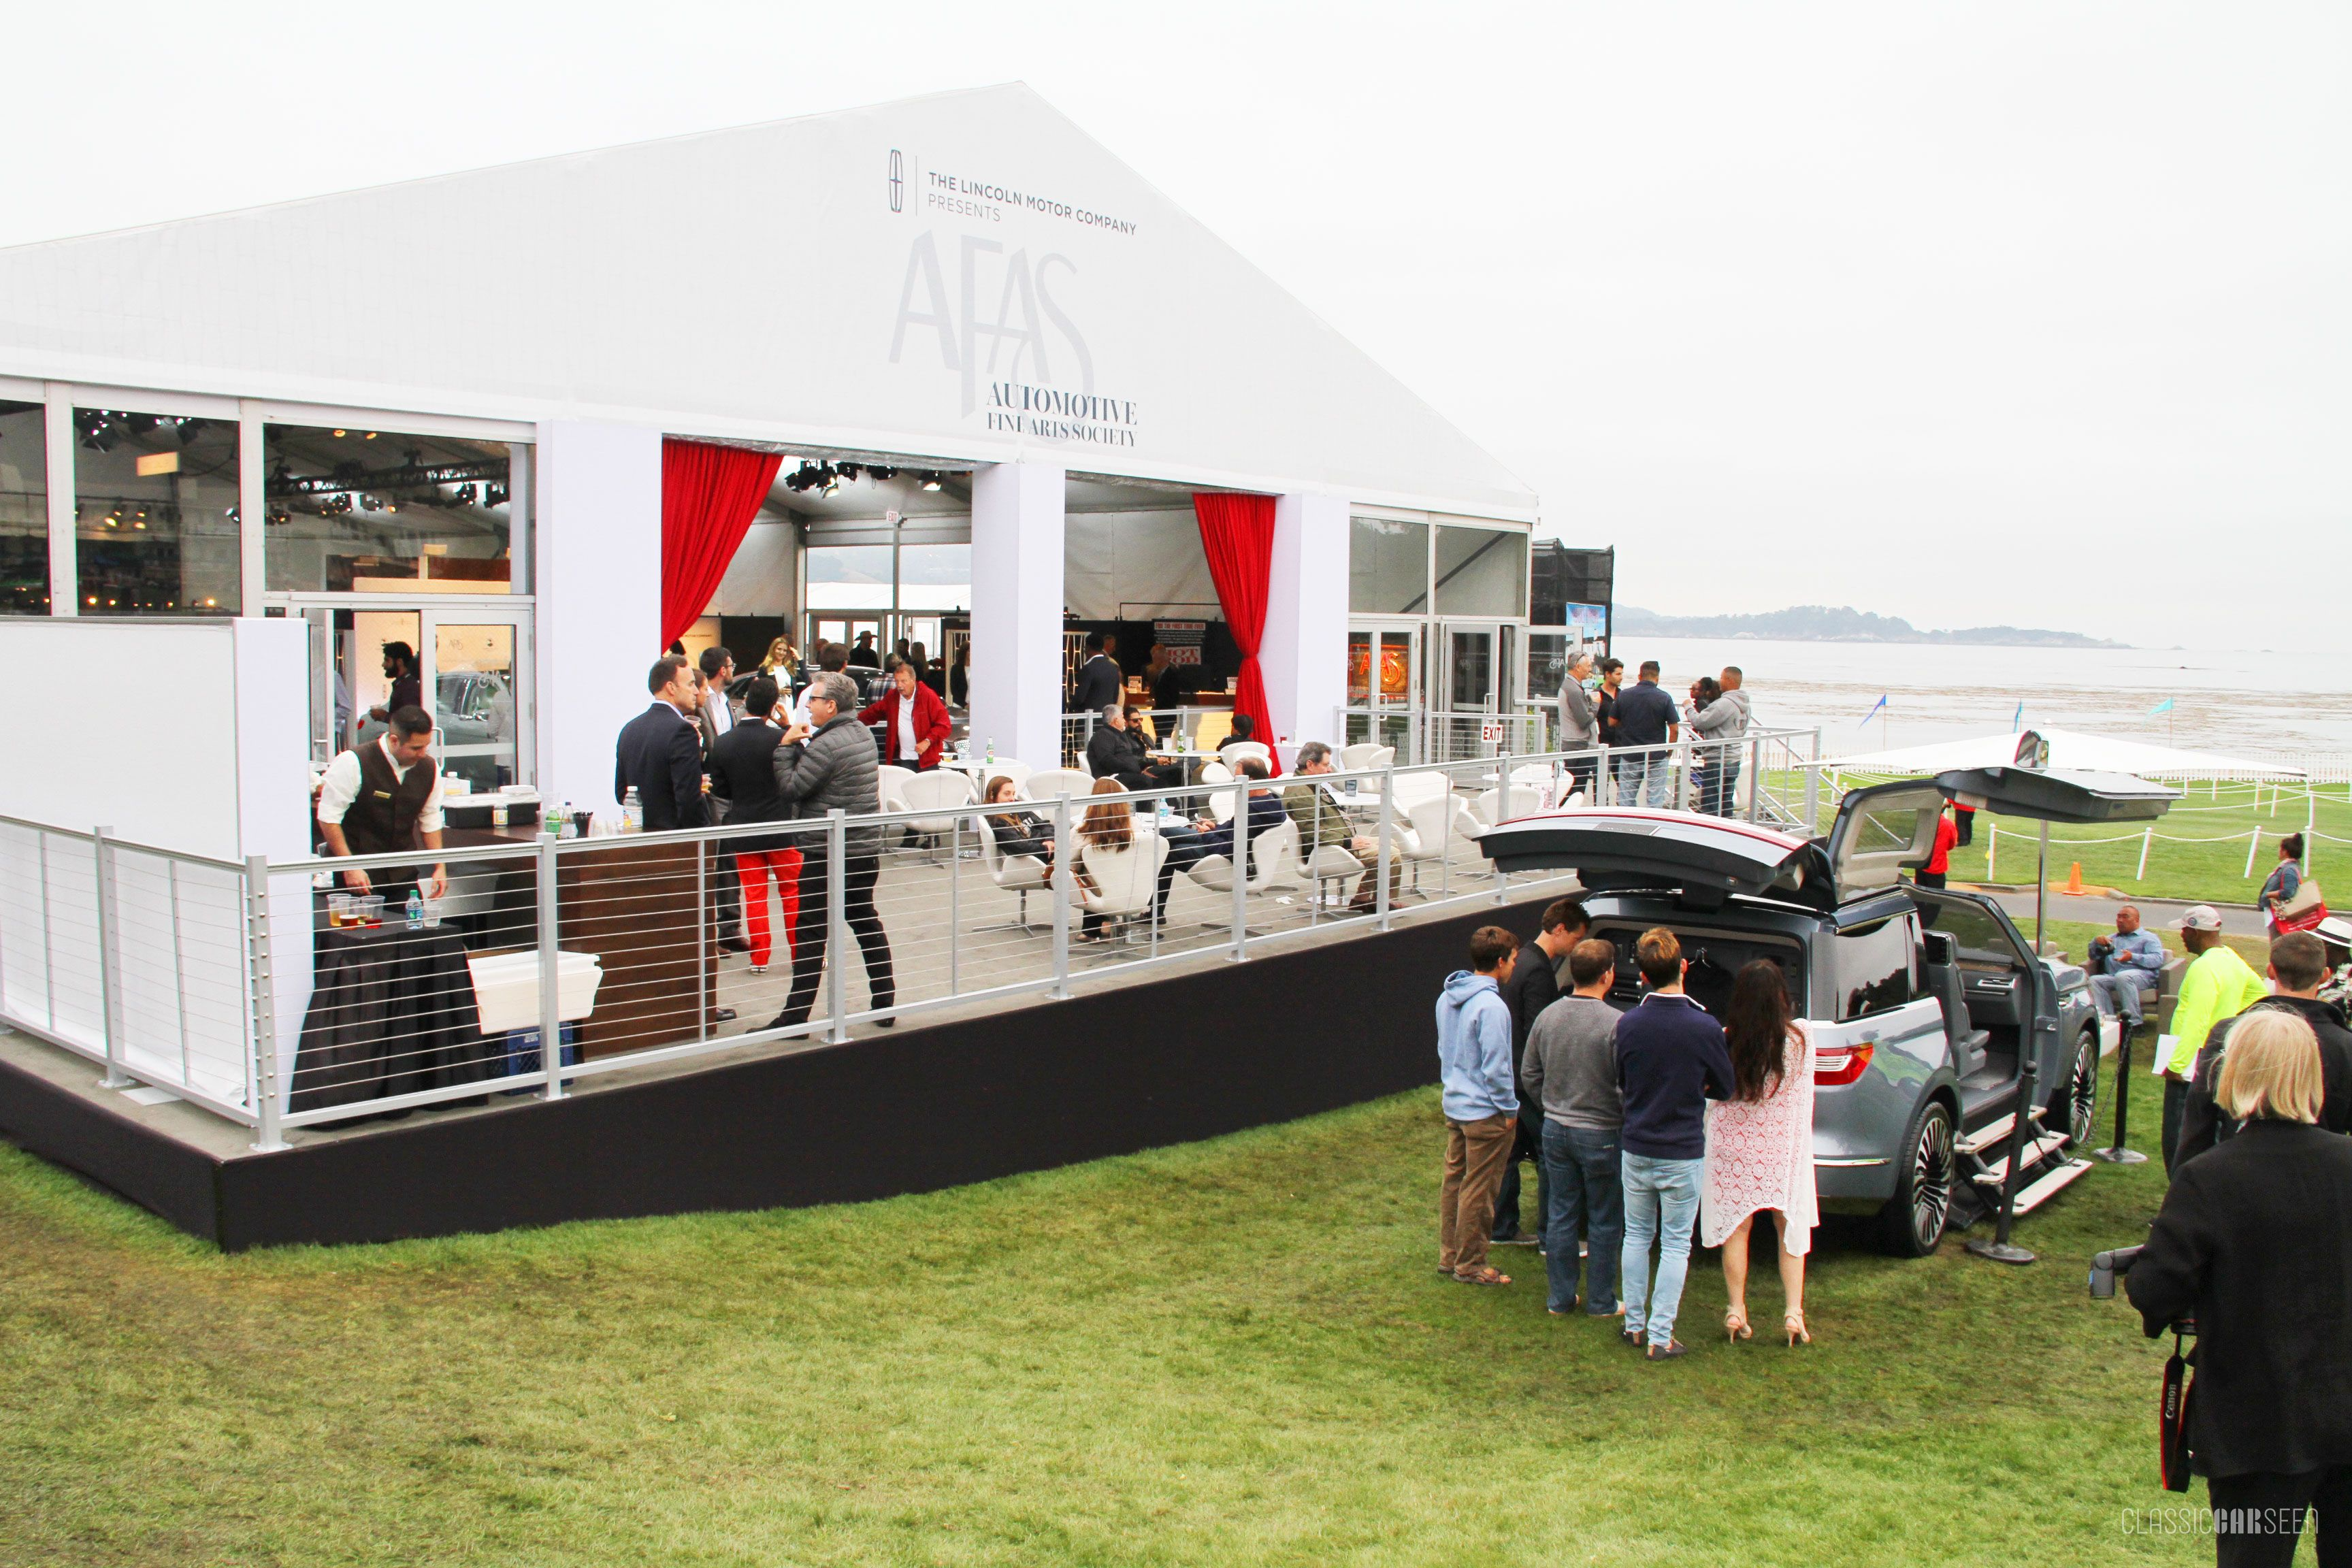 The 31st Annual Automotive Fine Arts Society Exhibition at Pebble Beach: A Judge's Perspective